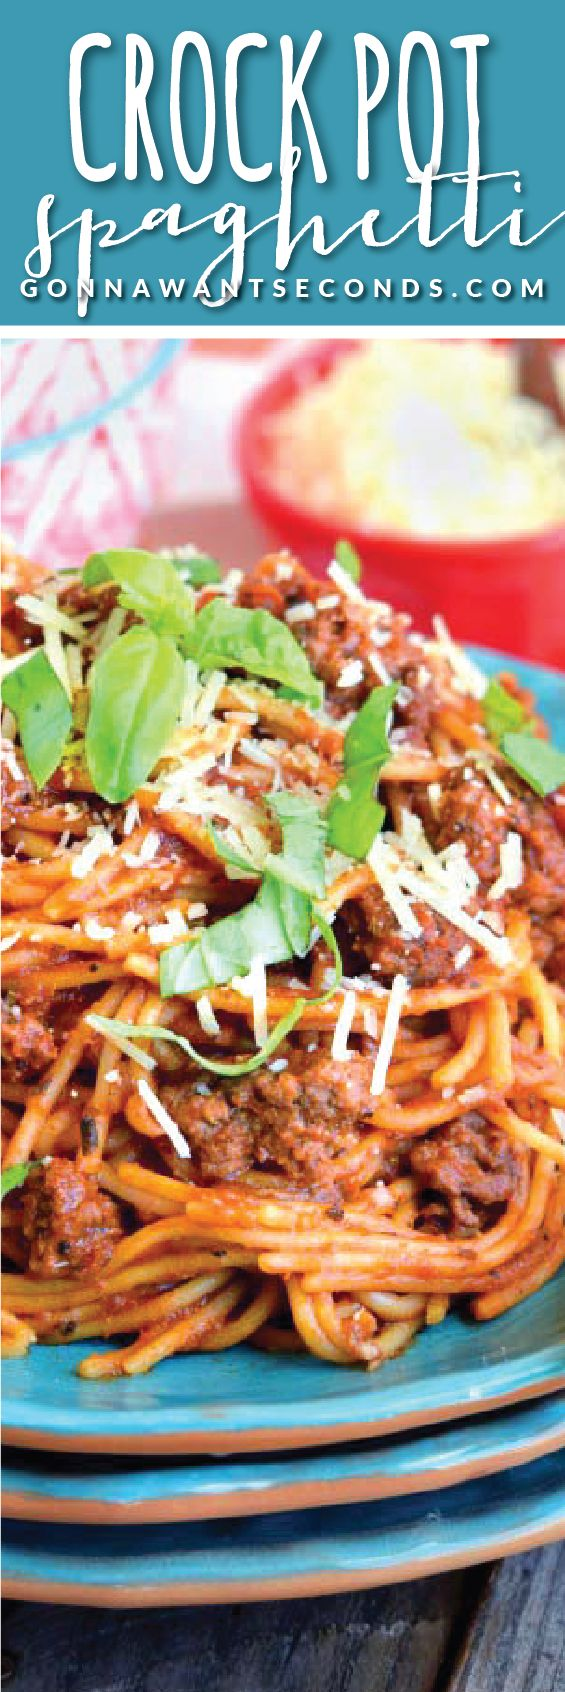 This family favorite Crock Pot Spaghetti is a dream come true! Super yummy and easy to make ~the pasta cooks in the crockpot in the sauce! How's that for convenience!